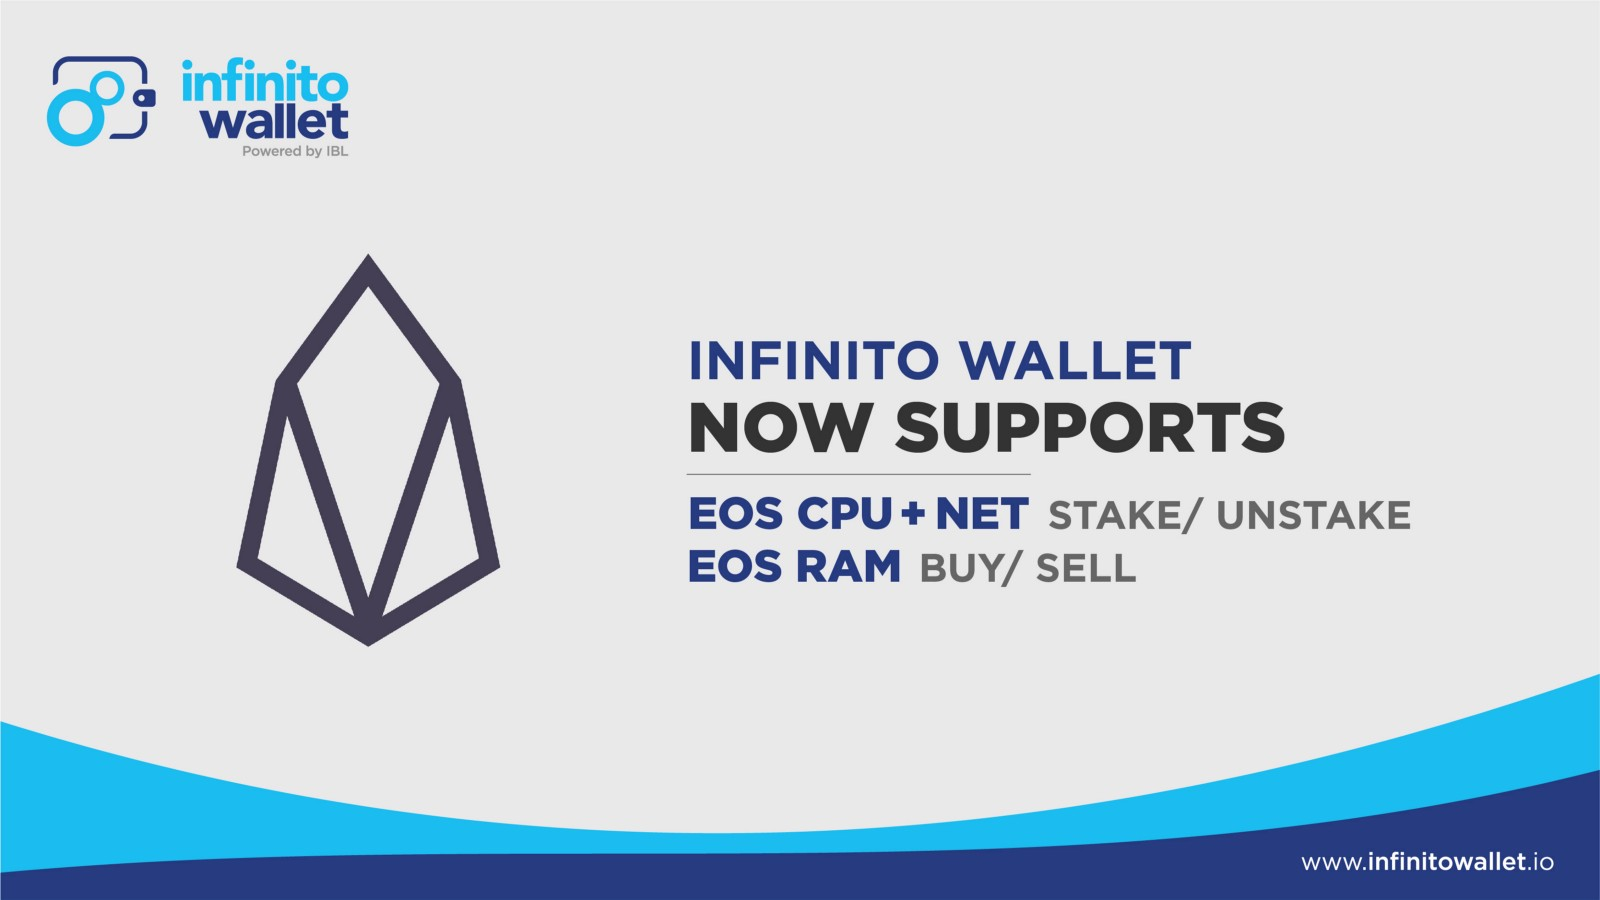 eos holders you can now buy sell ram and stake unstake net and cpu